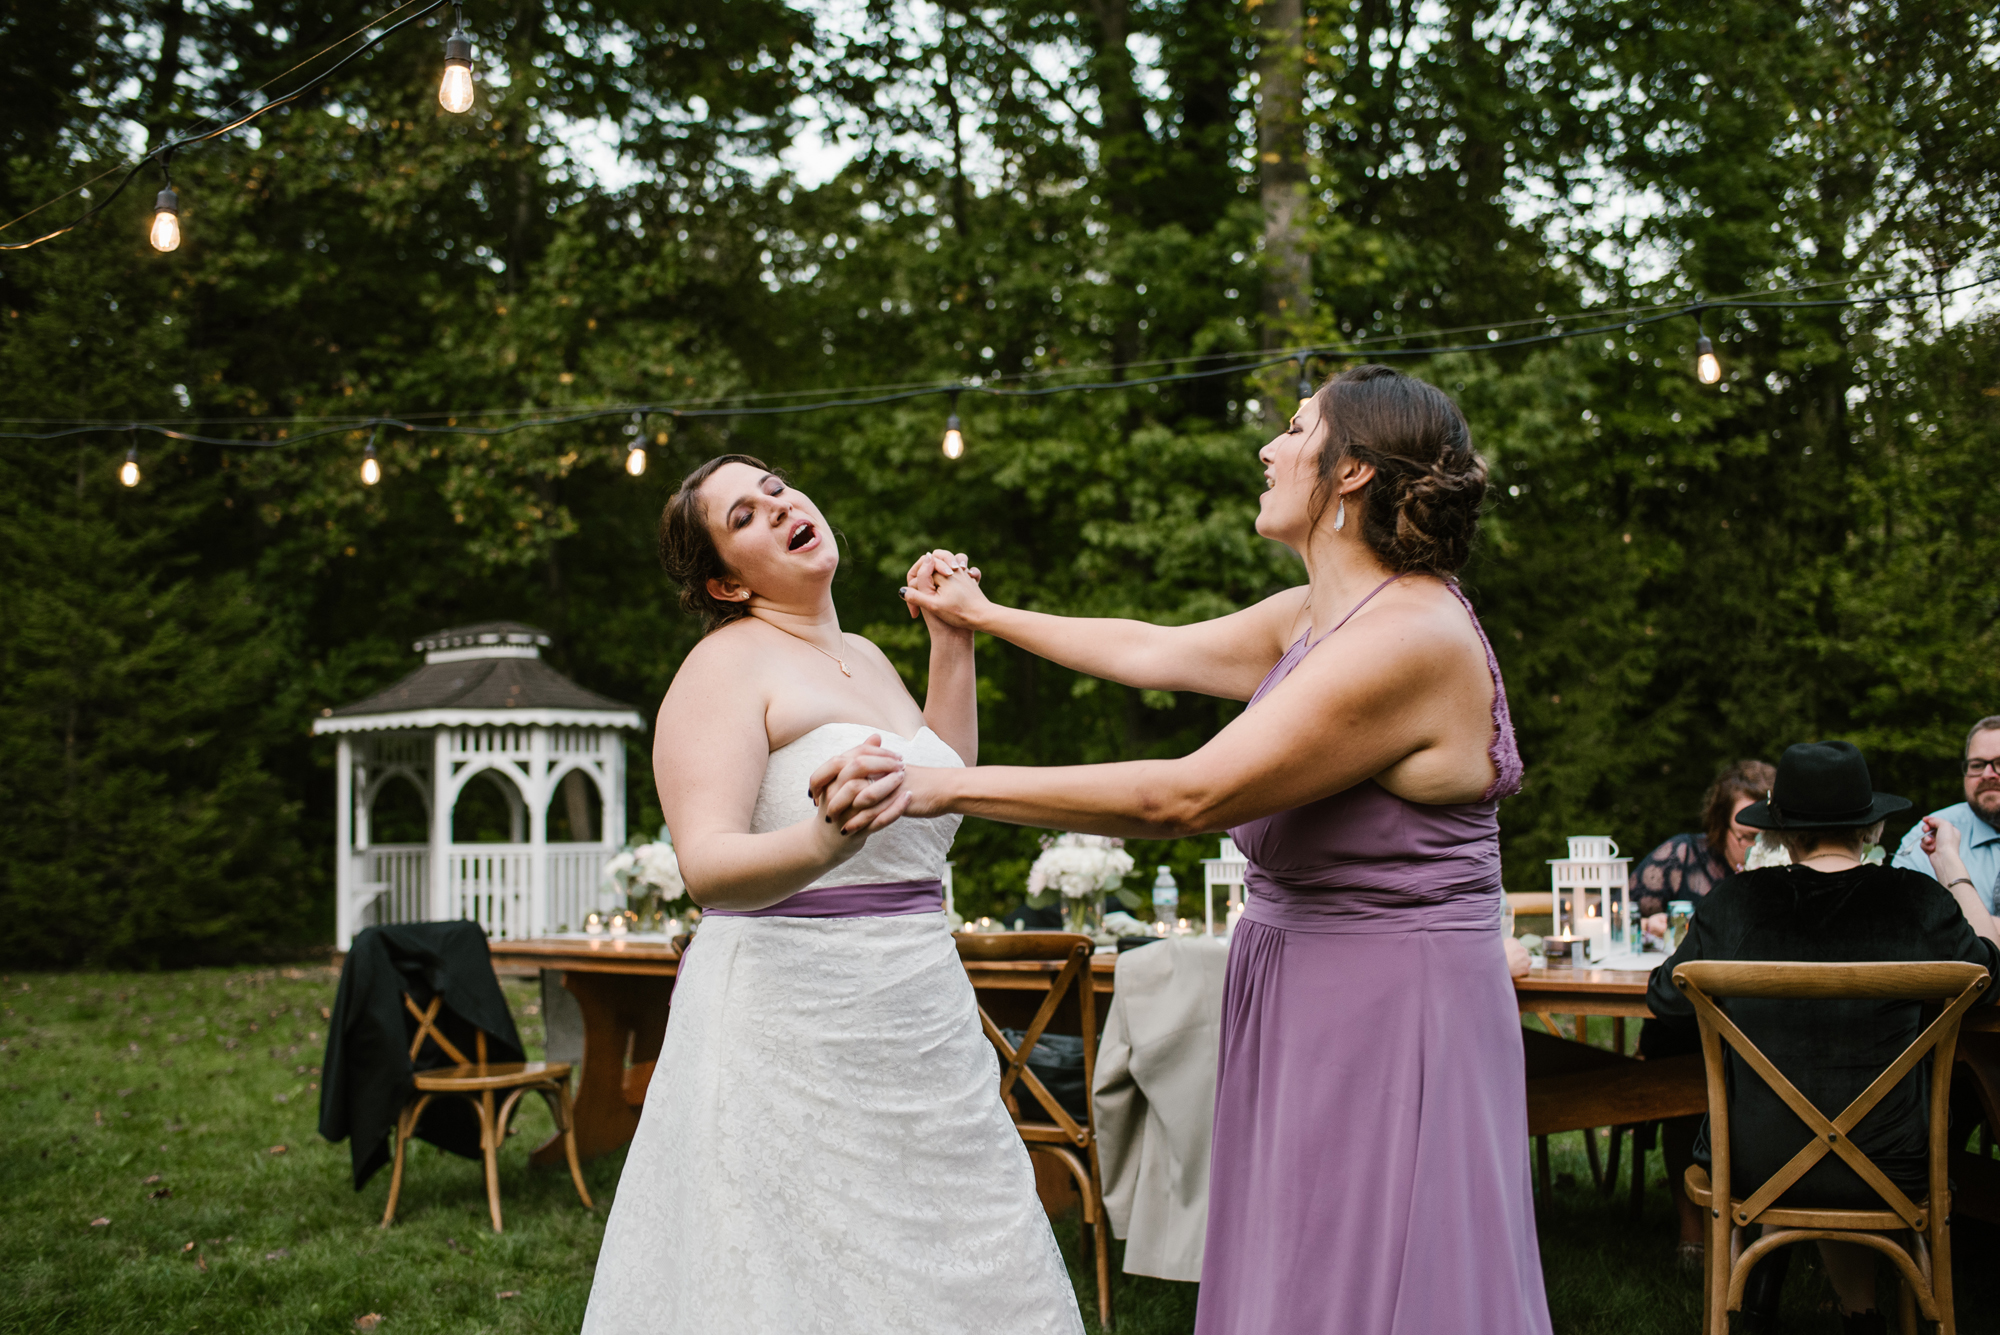 sawyer-michigan-backyard-wedding-dancing-pictures-sydney-marie (10).jpg